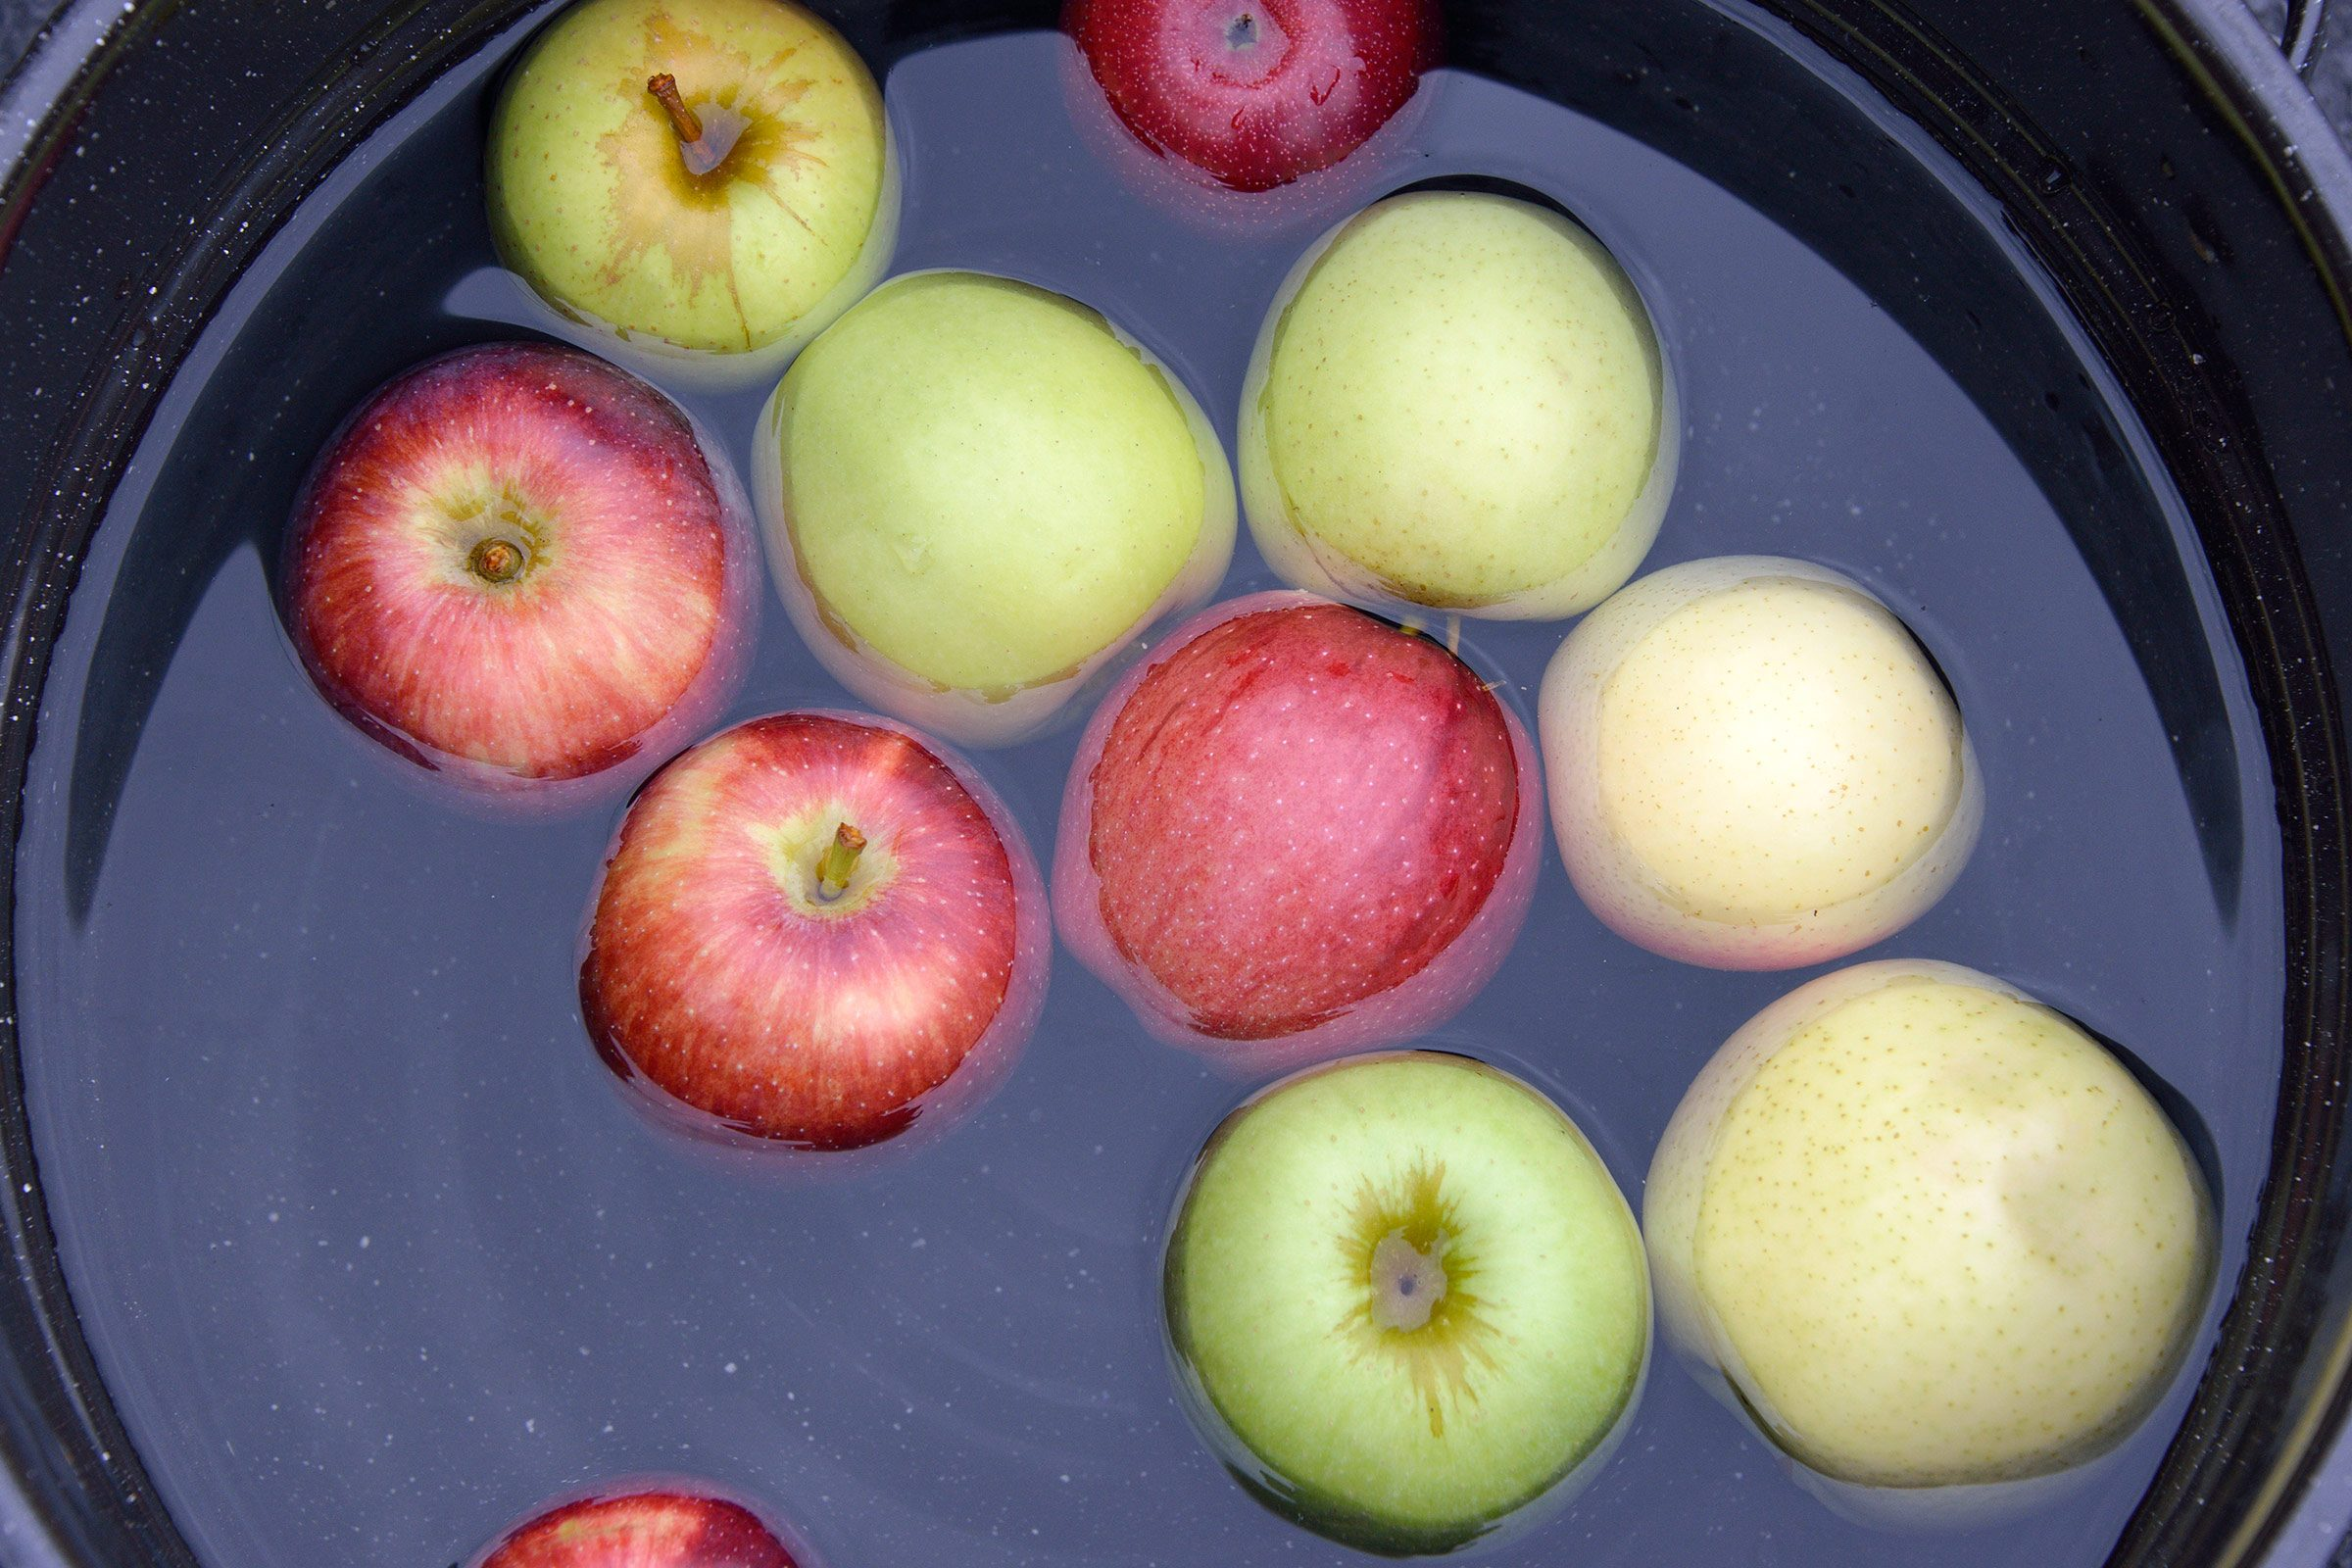 6. Apple bobbing originated in Britain